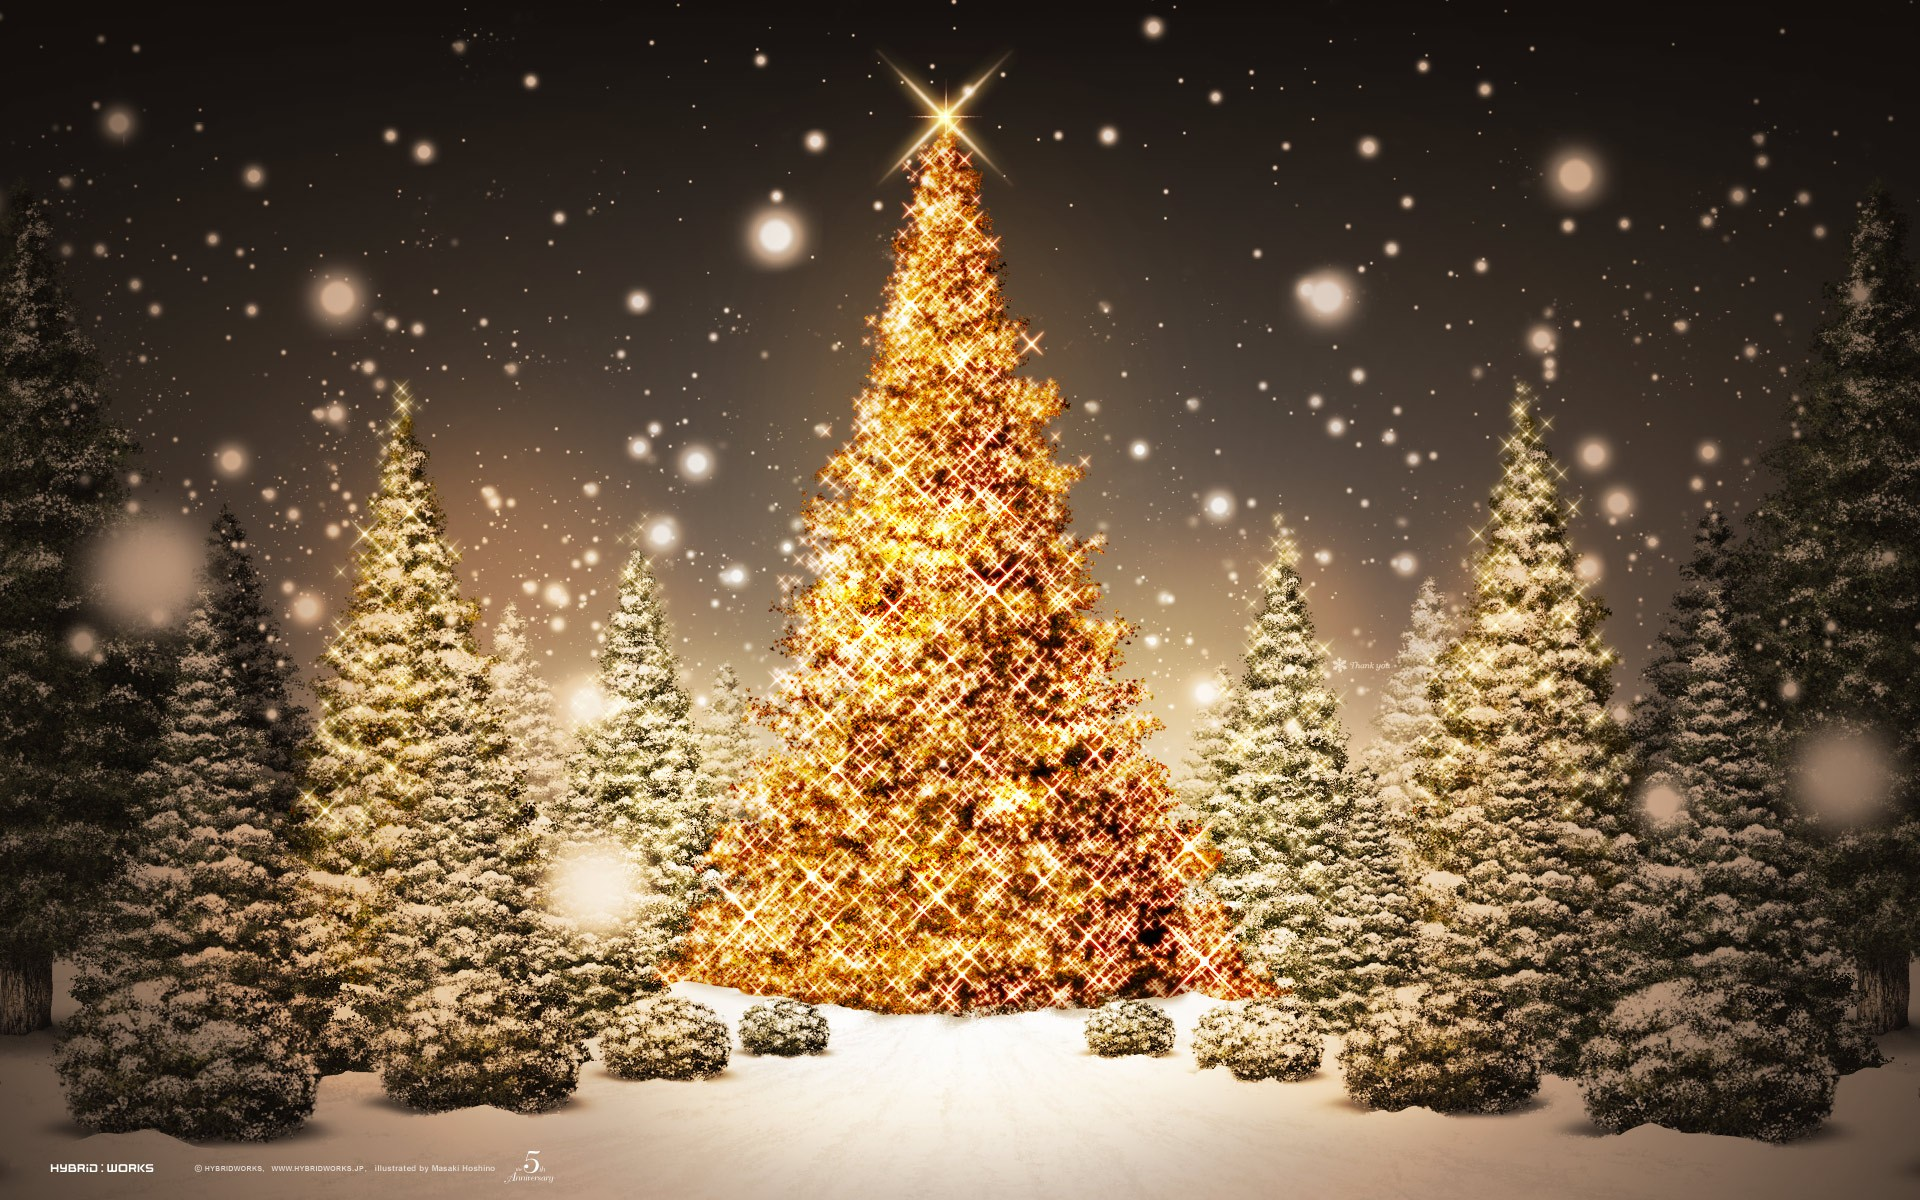 Golden Christmas Tree Wallpaper